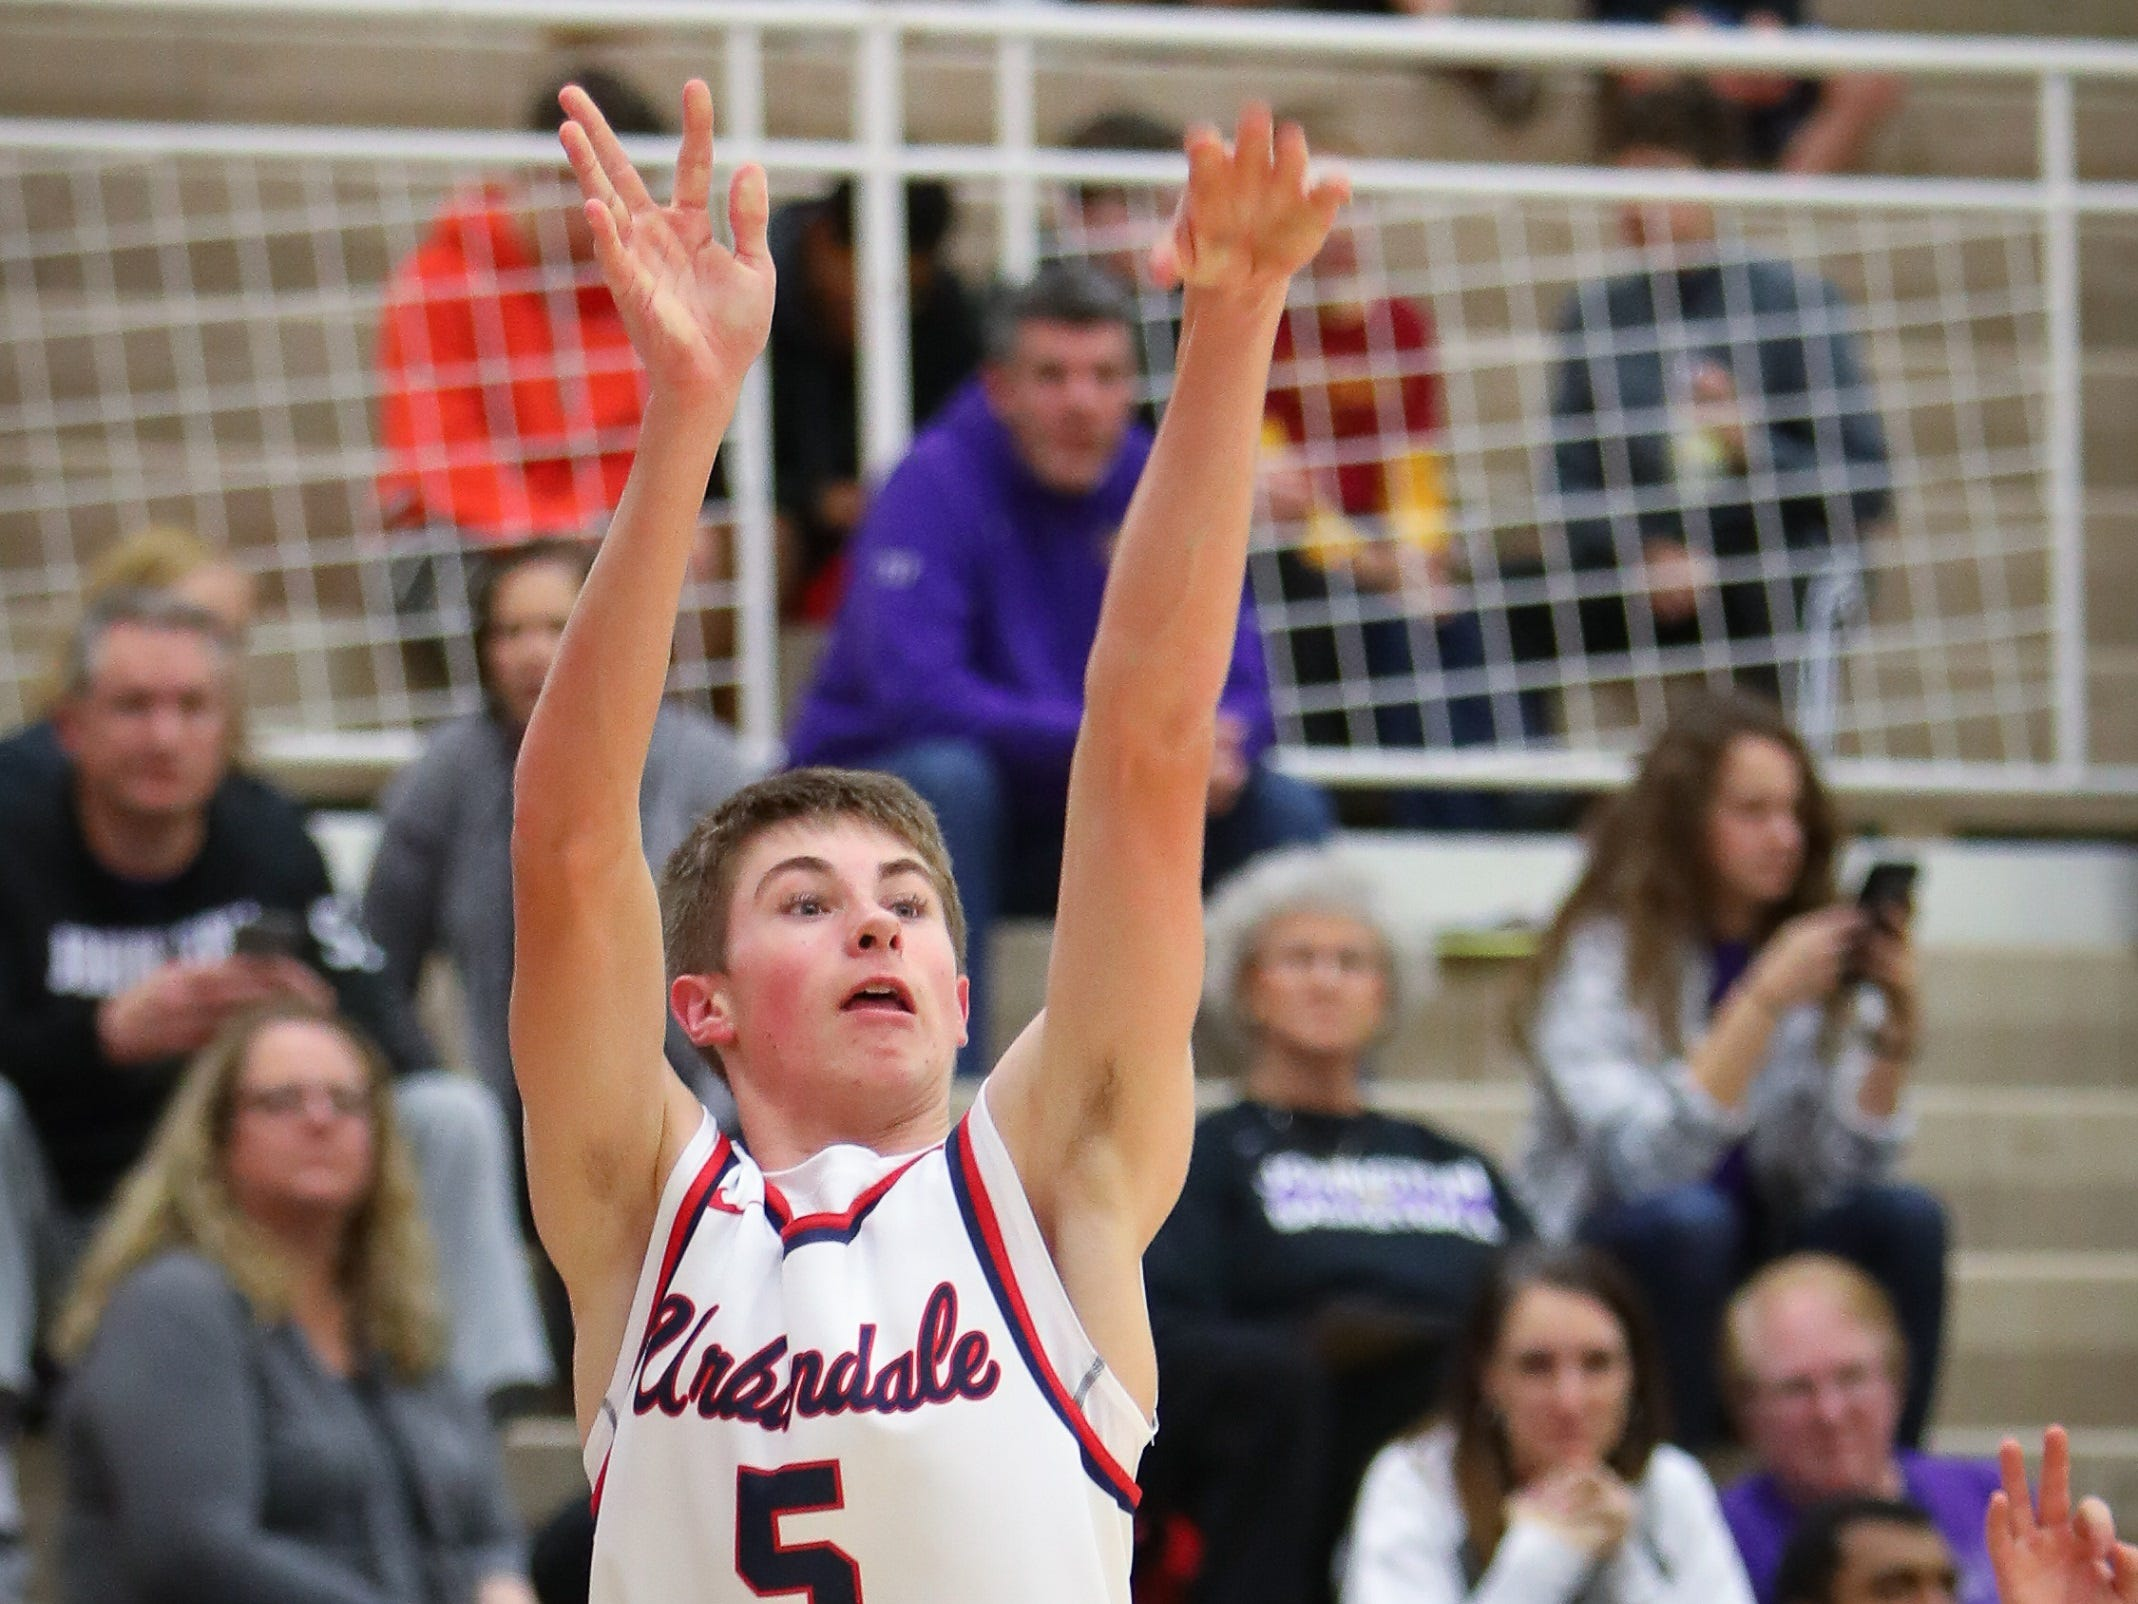 Urbandale sophomore Drew Dykstra attempts a three-pointer during a boys high school basketball game between the Johnston Dragons and the Urbandale J-Hawks at Urbandale High School on Dec. 18, 2018 in Urbandale, Iowa.